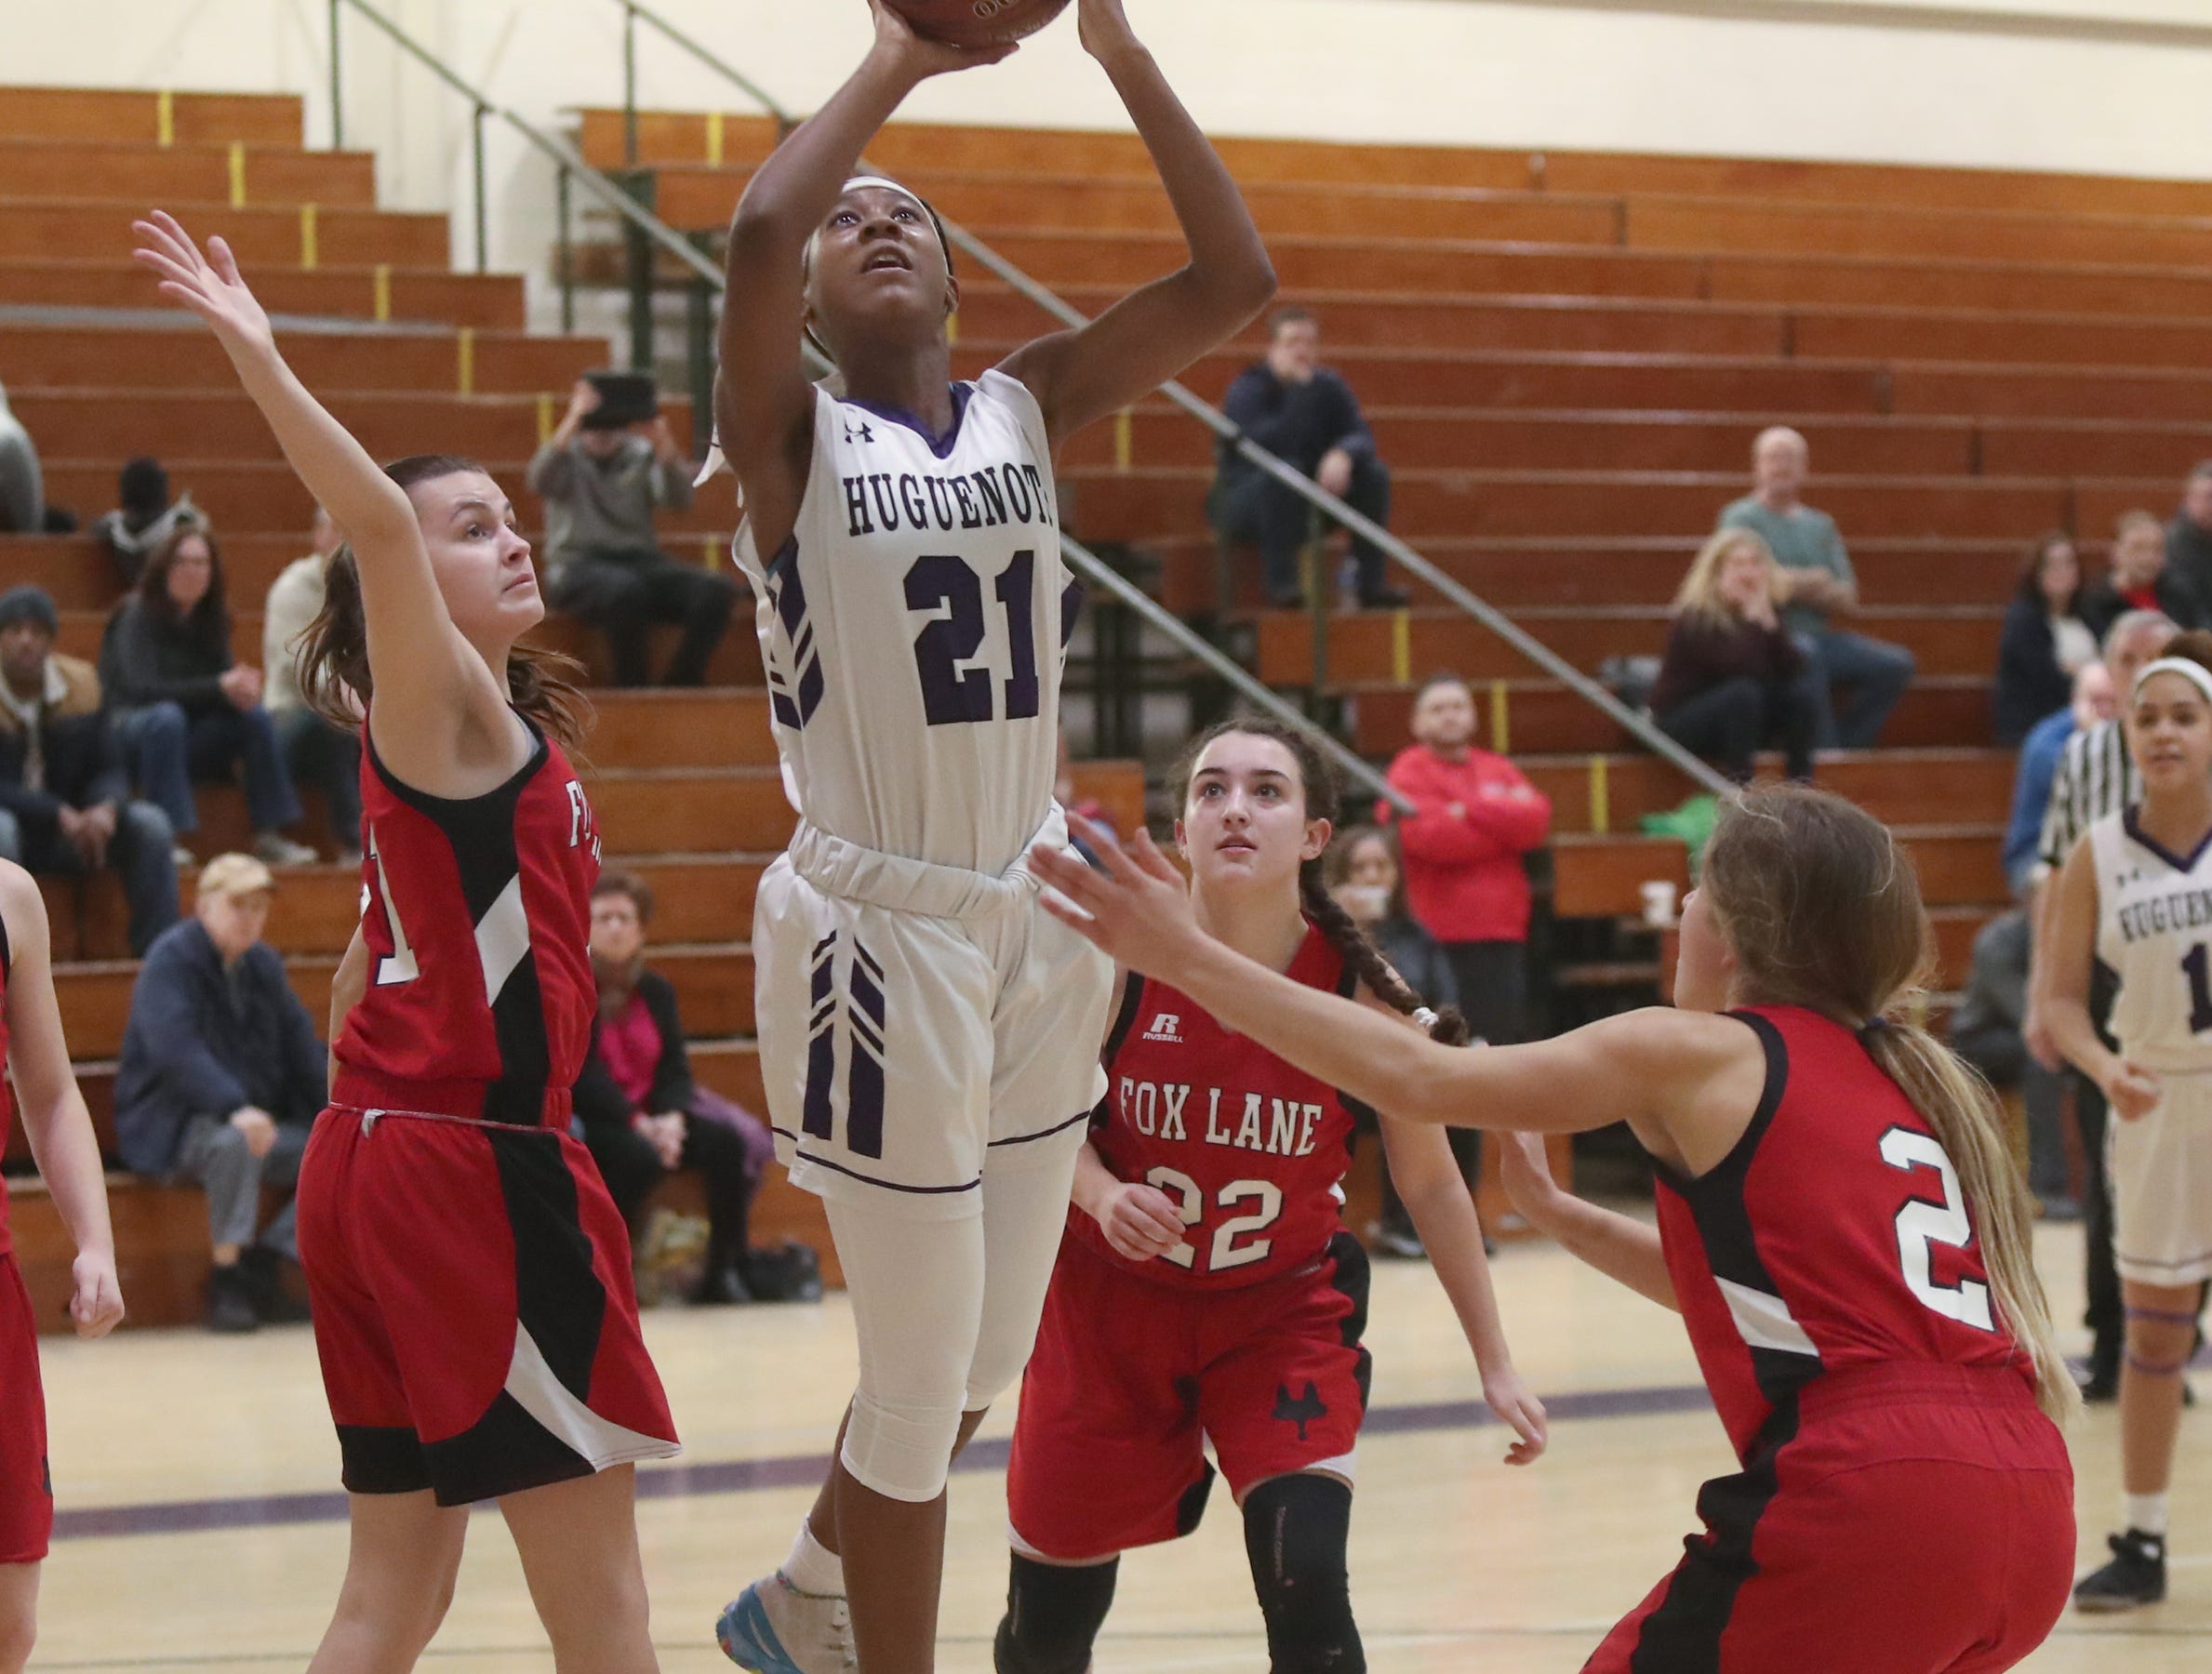 New Rochelle's Nyeira Spady (21) puts up a shot in the class AA girls basketball outbracket game against Fox Lane at New Rochelle High School in New Rochelle on Saturday, February 16, 2019.